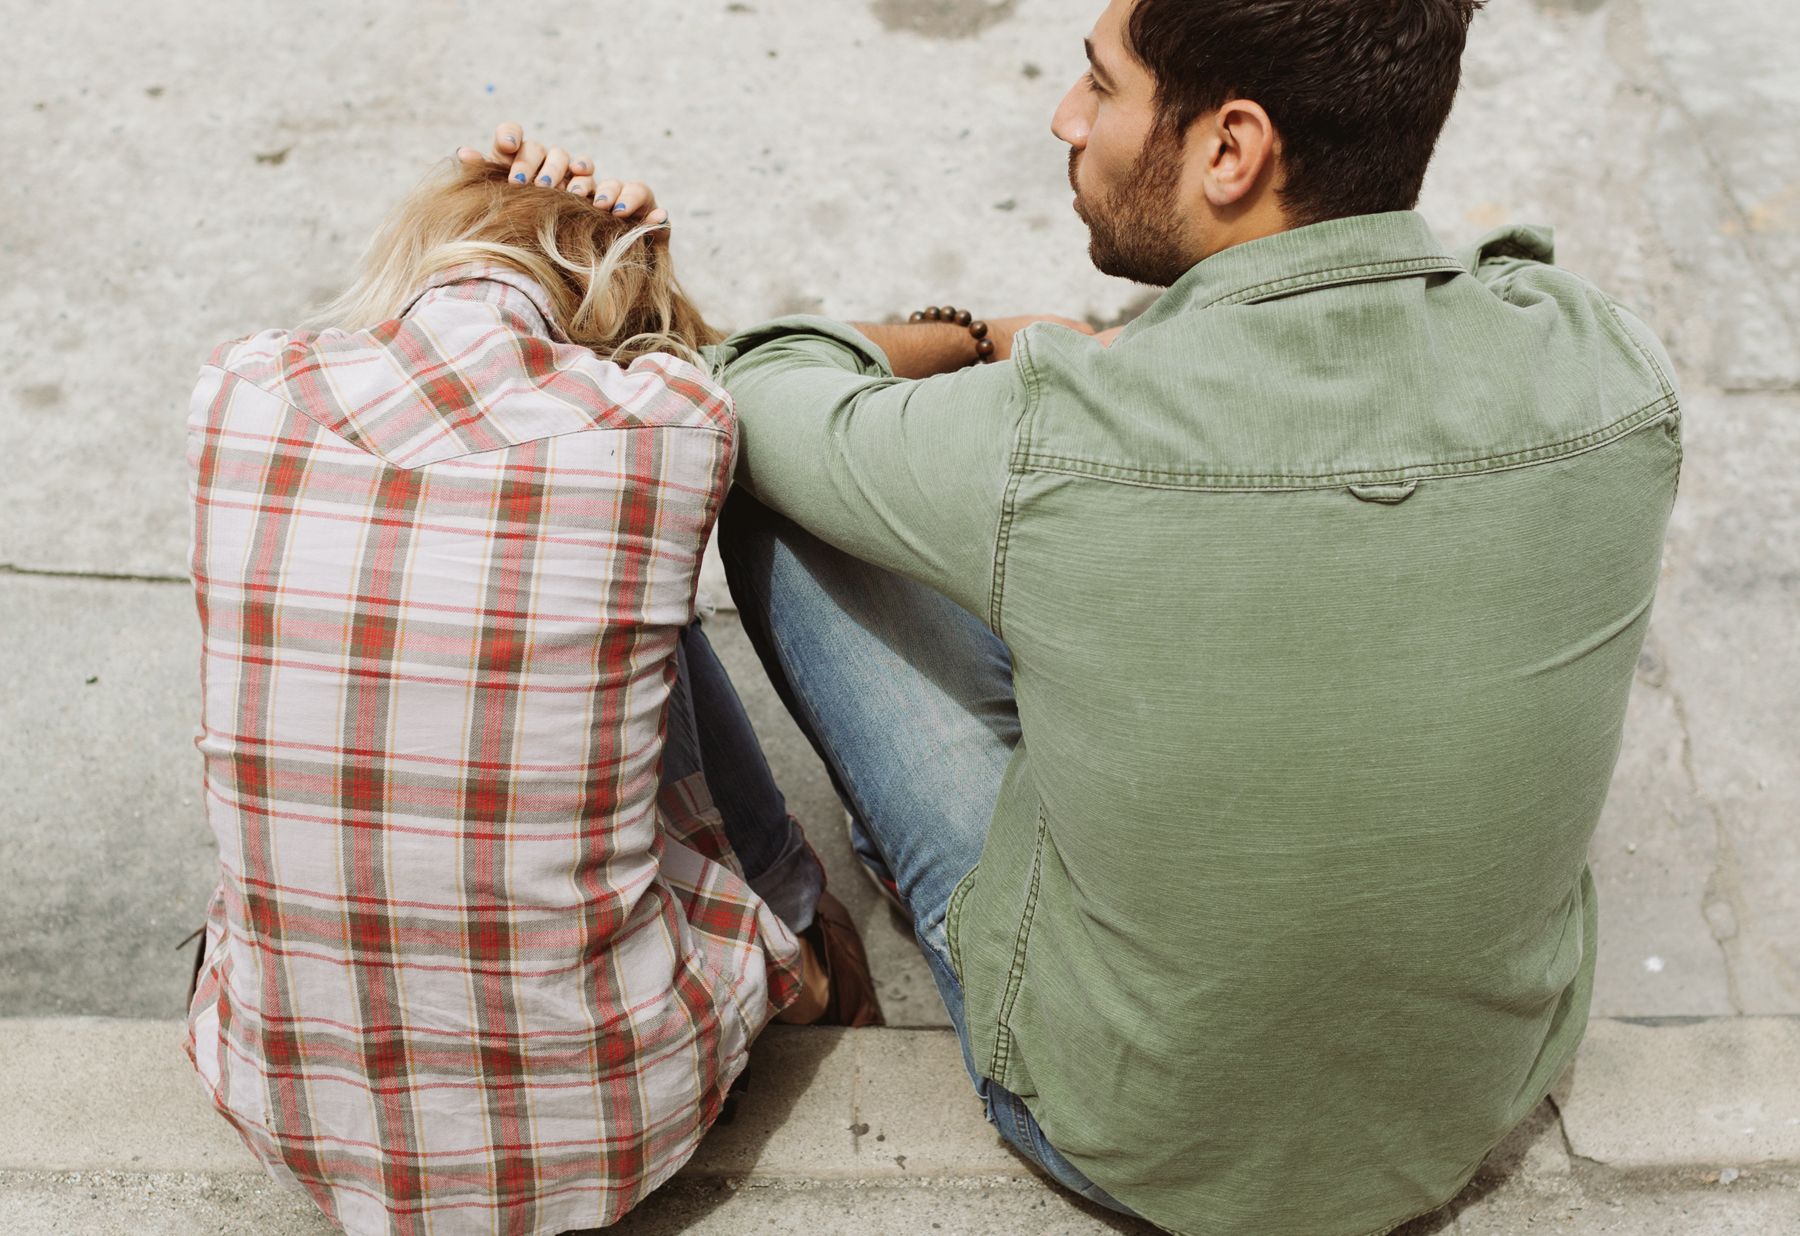 how to get over physical intimacy issues